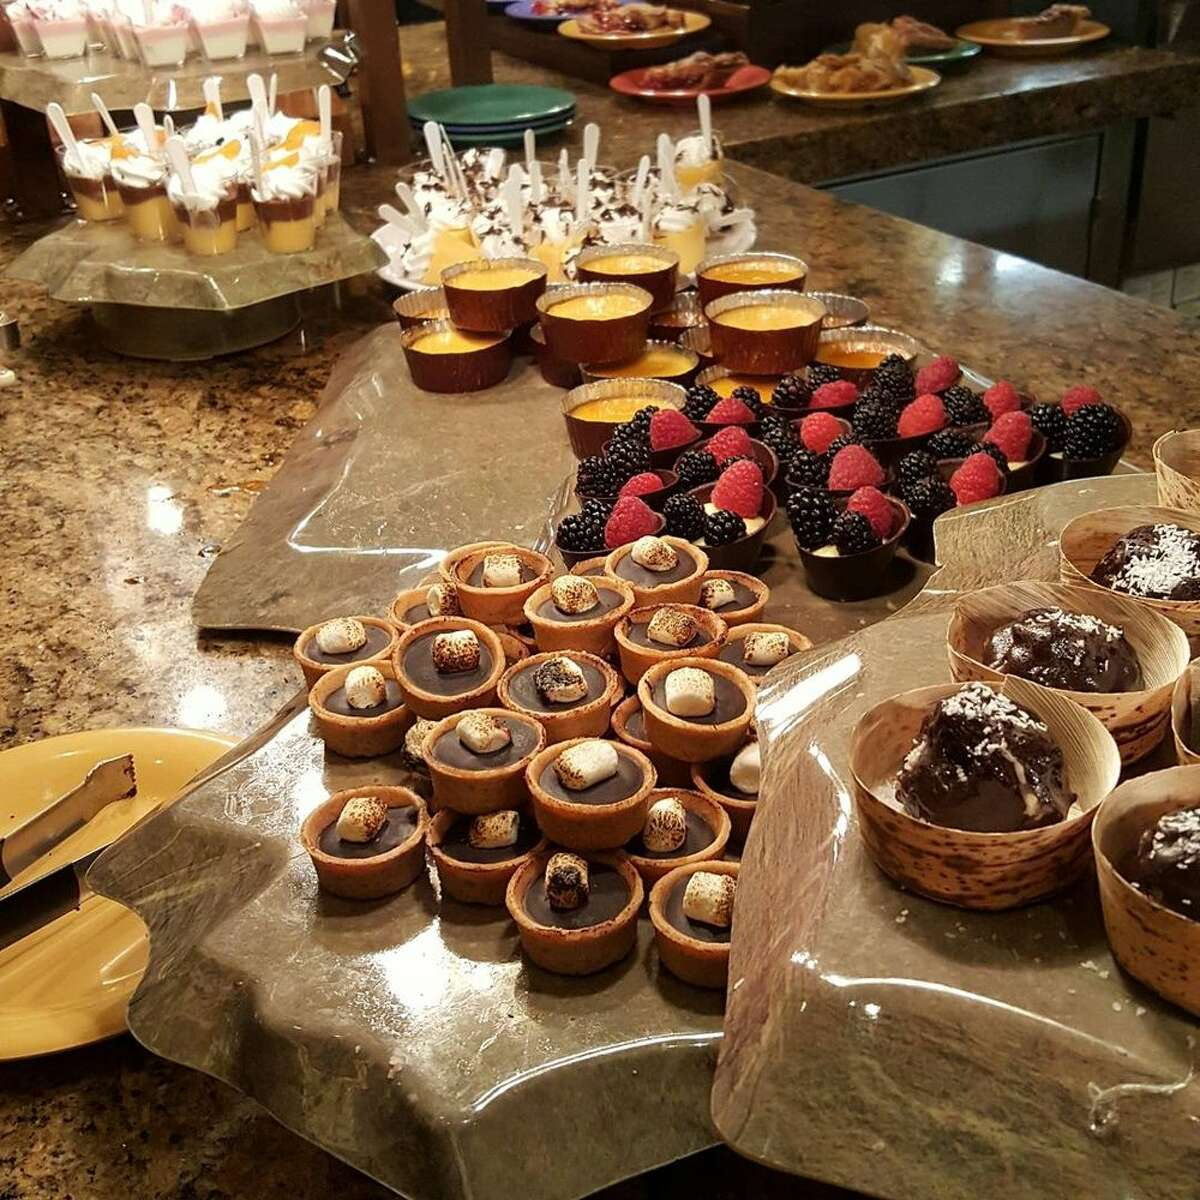 The dessert table at the Harvest Buffet restaurant at Cache Creek Casino.